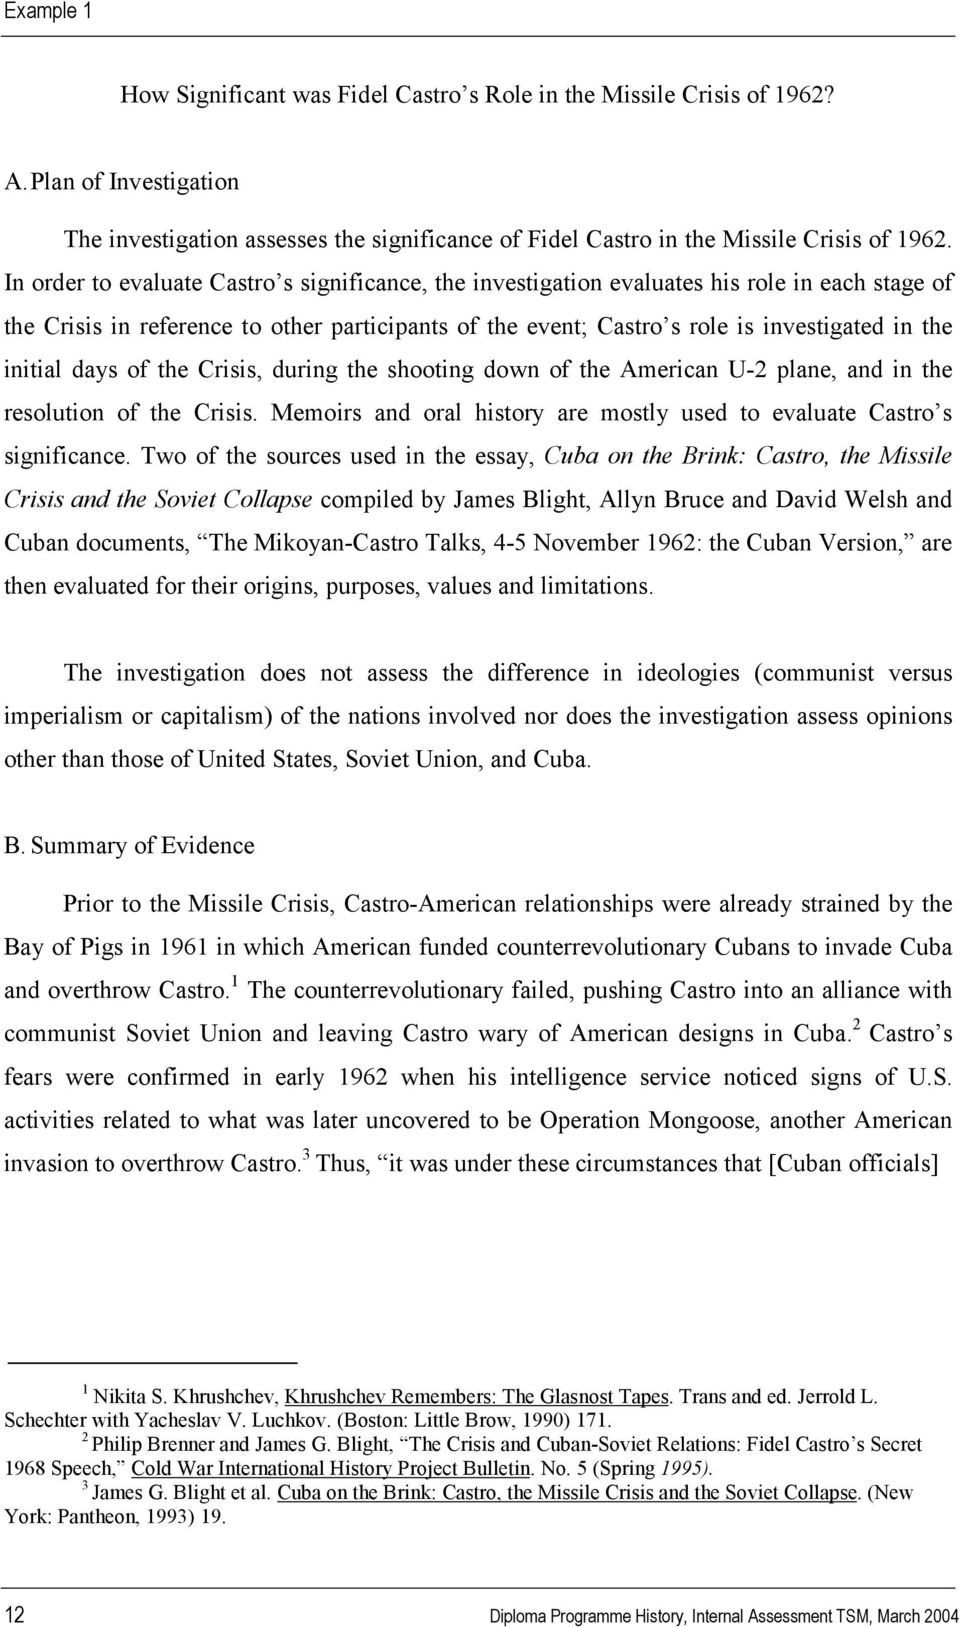 initial days of the Crisis, during the shooting down of the American U-2 plane, and in the resolution of the Crisis. Memoirs and oral history are mostly used to evaluate Castro s significance.